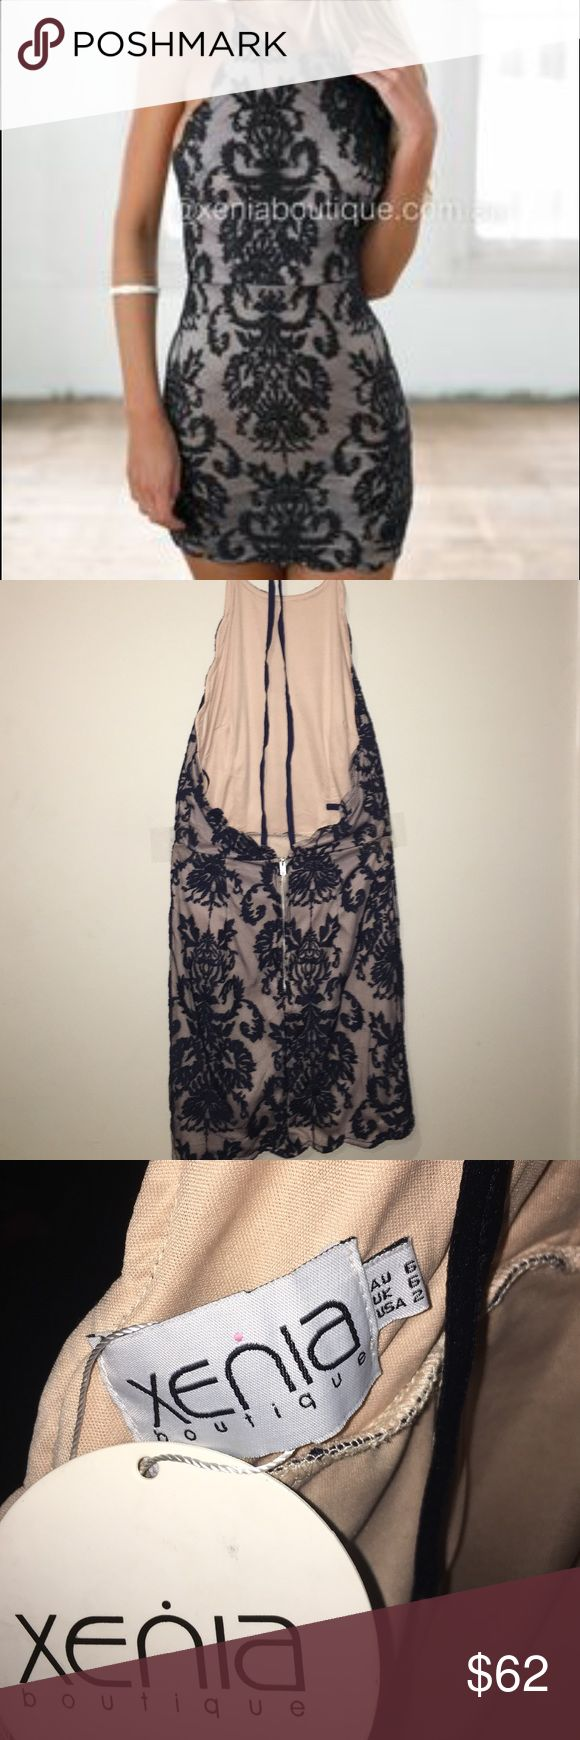 Xenia Boutique Dress New w/ Tags Halter, lace overlay dress from Xenia Boutique (Australia) with a low open back. Never worn before with tags on it! Dark navy color. Xenia Boutique Dresses Backless